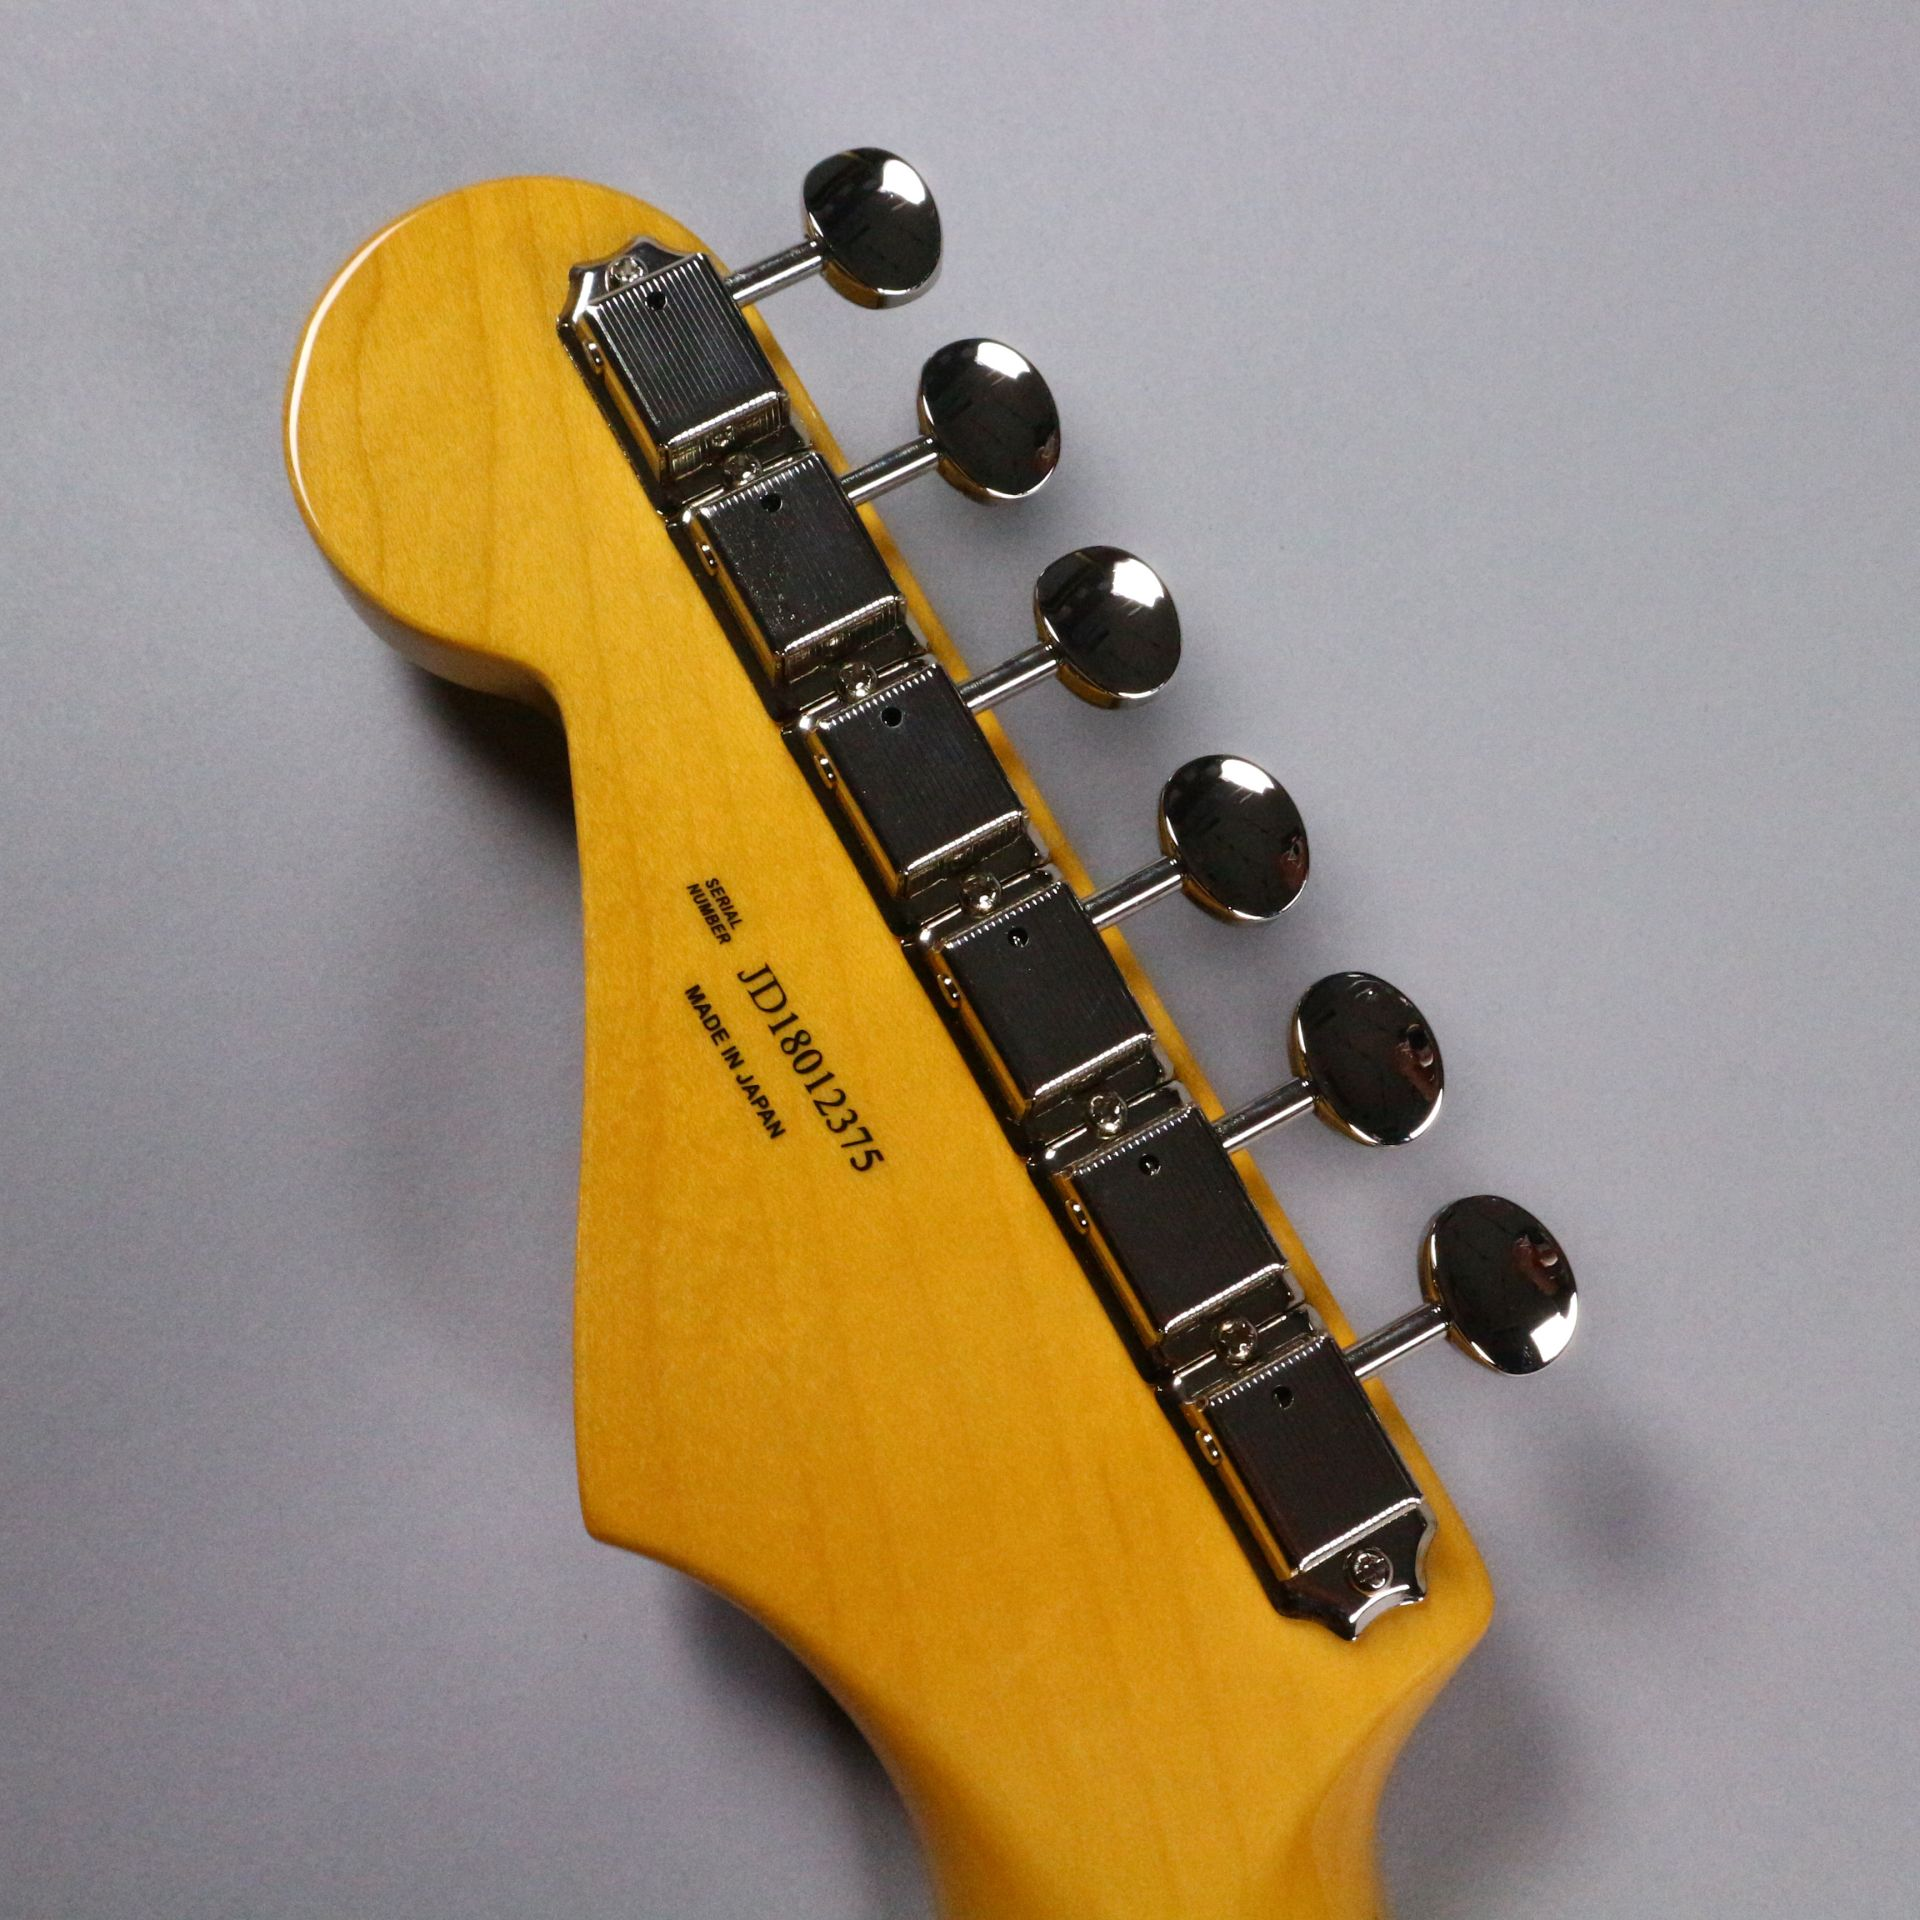 TRADITIONAL 58 STRATOCASTER(MADE IN JAPAN)のヘッド裏-アップ画像